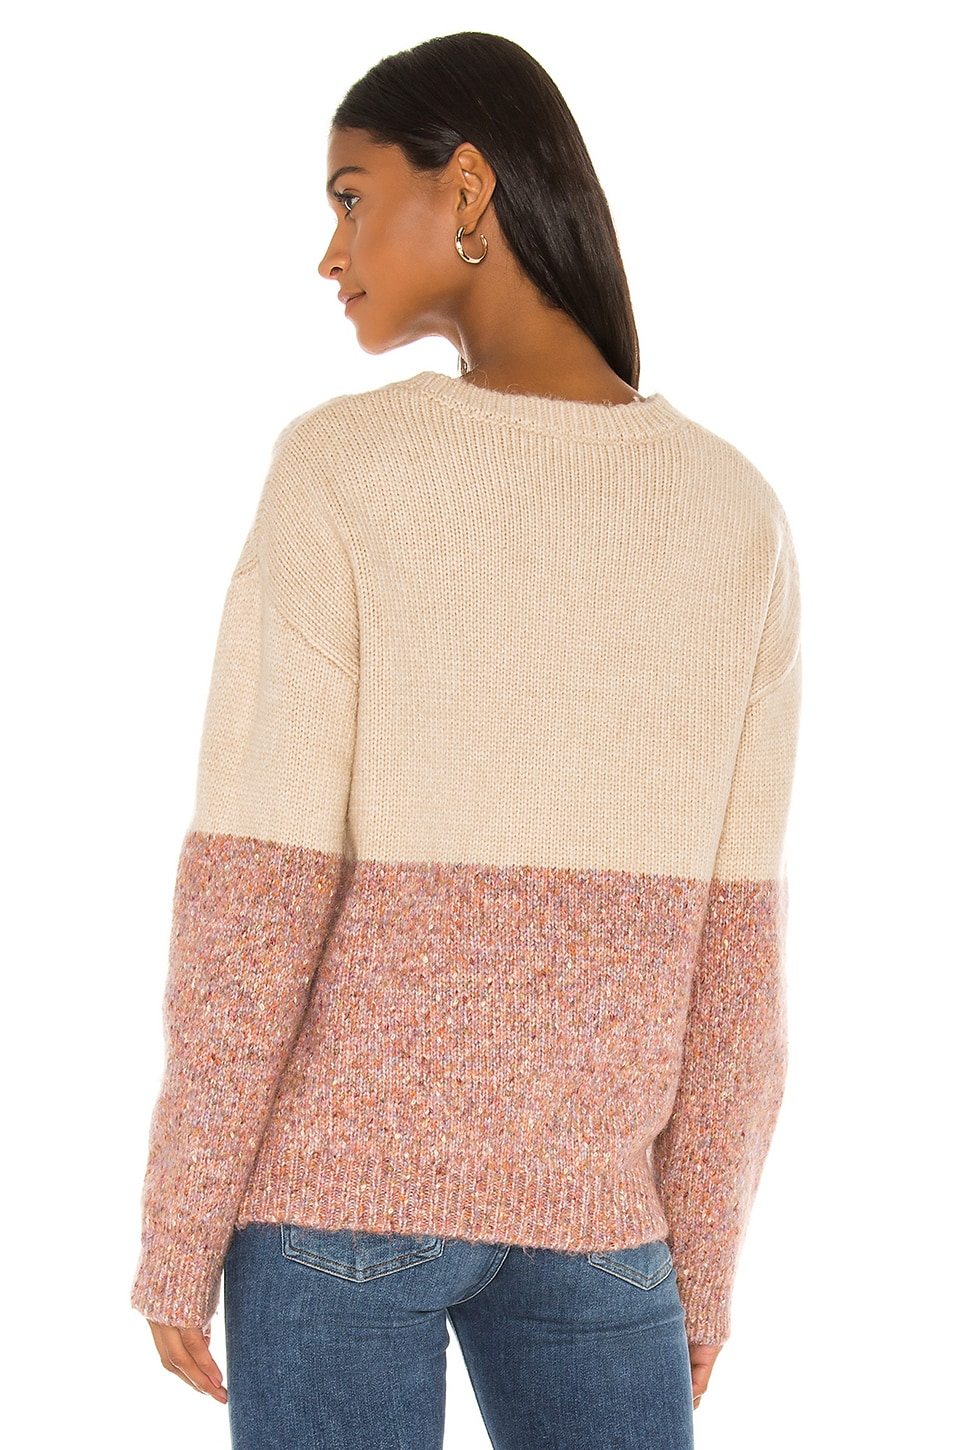 Cupcakes And Cashmere Sweaters Carmel Crew Neck Sweater